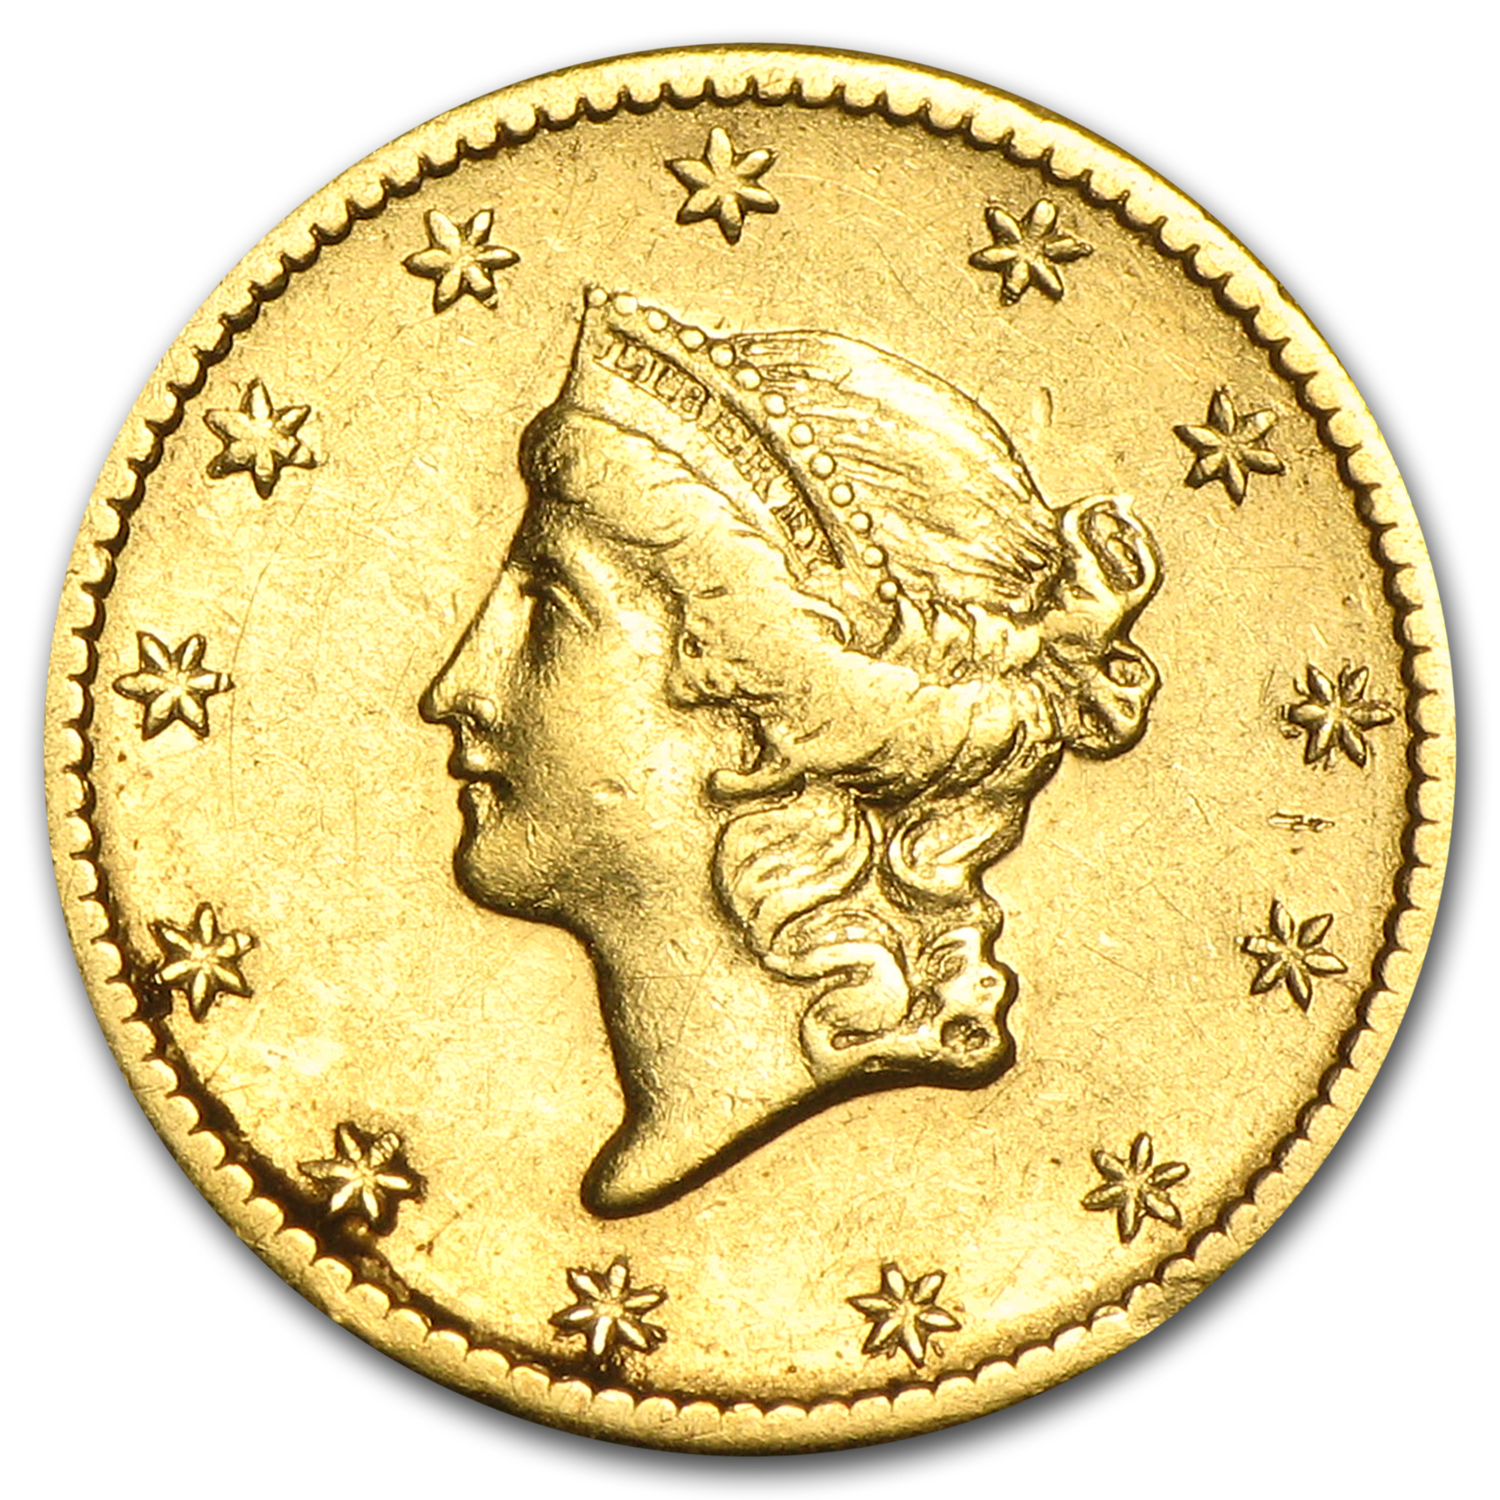 $1 Liberty Head Gold - Type 1 - Cleaned